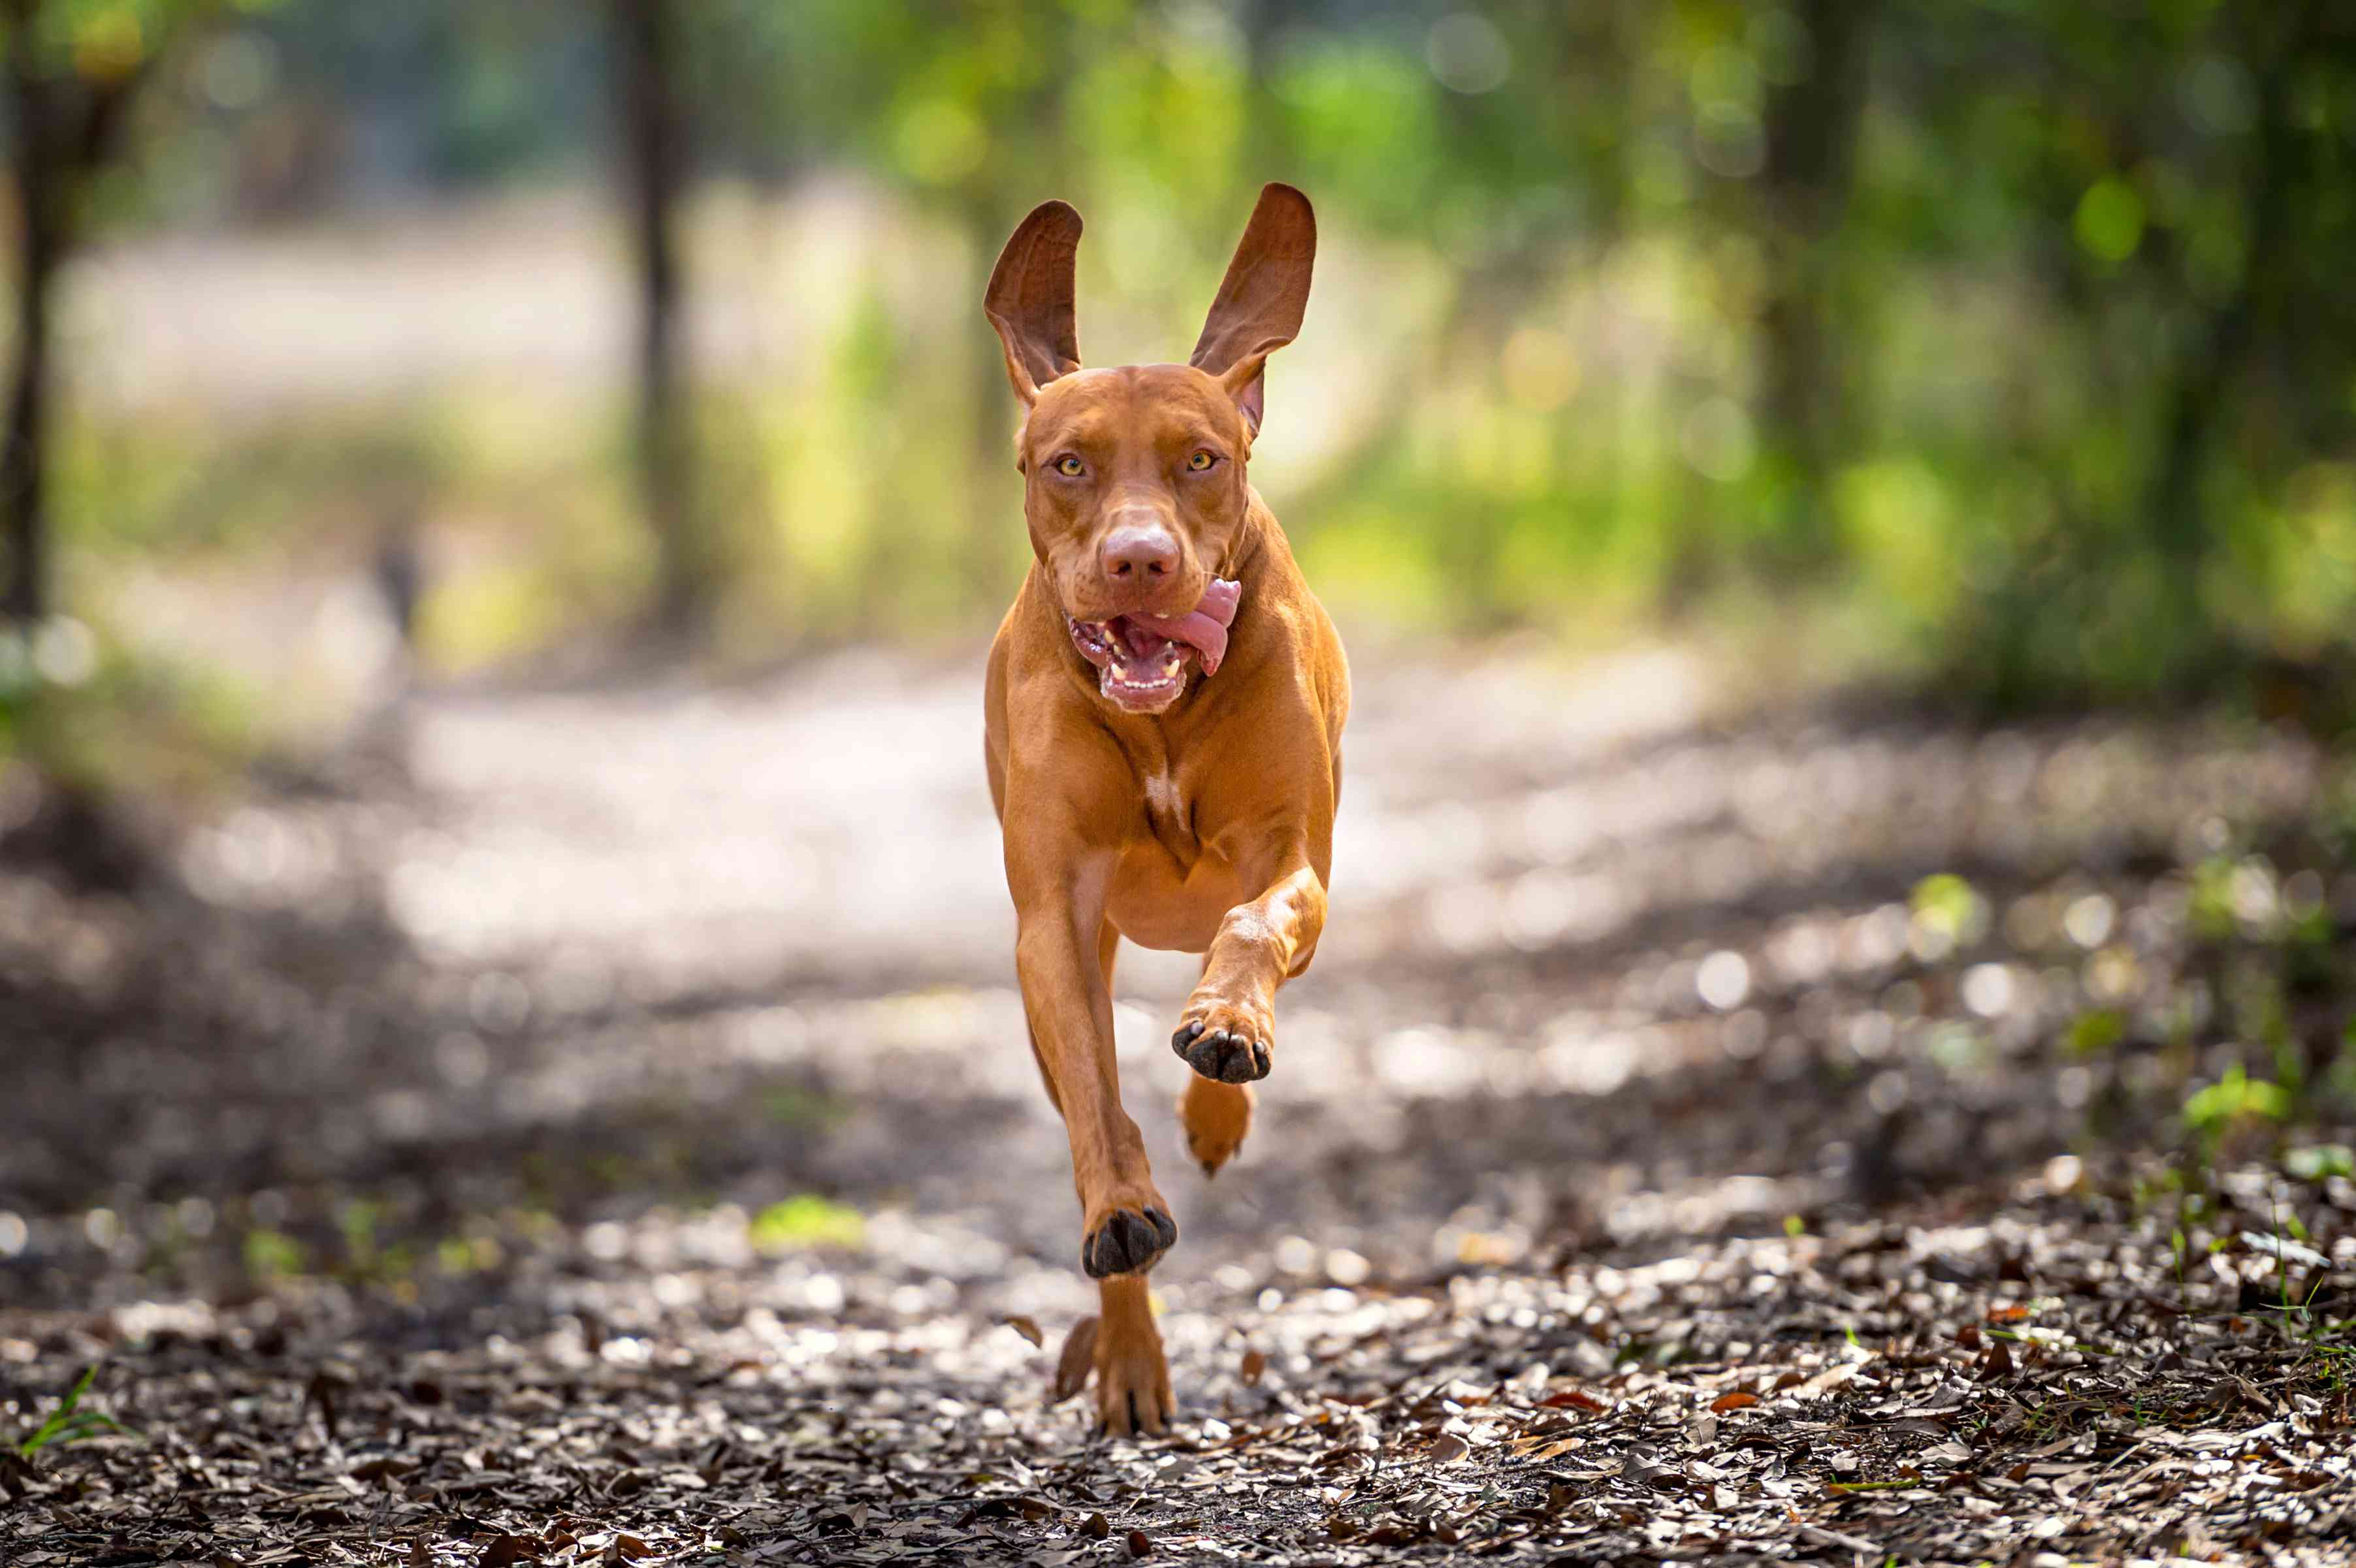 Vizsla dog with its ears erect and its tongue hanging out to the side running through a forest